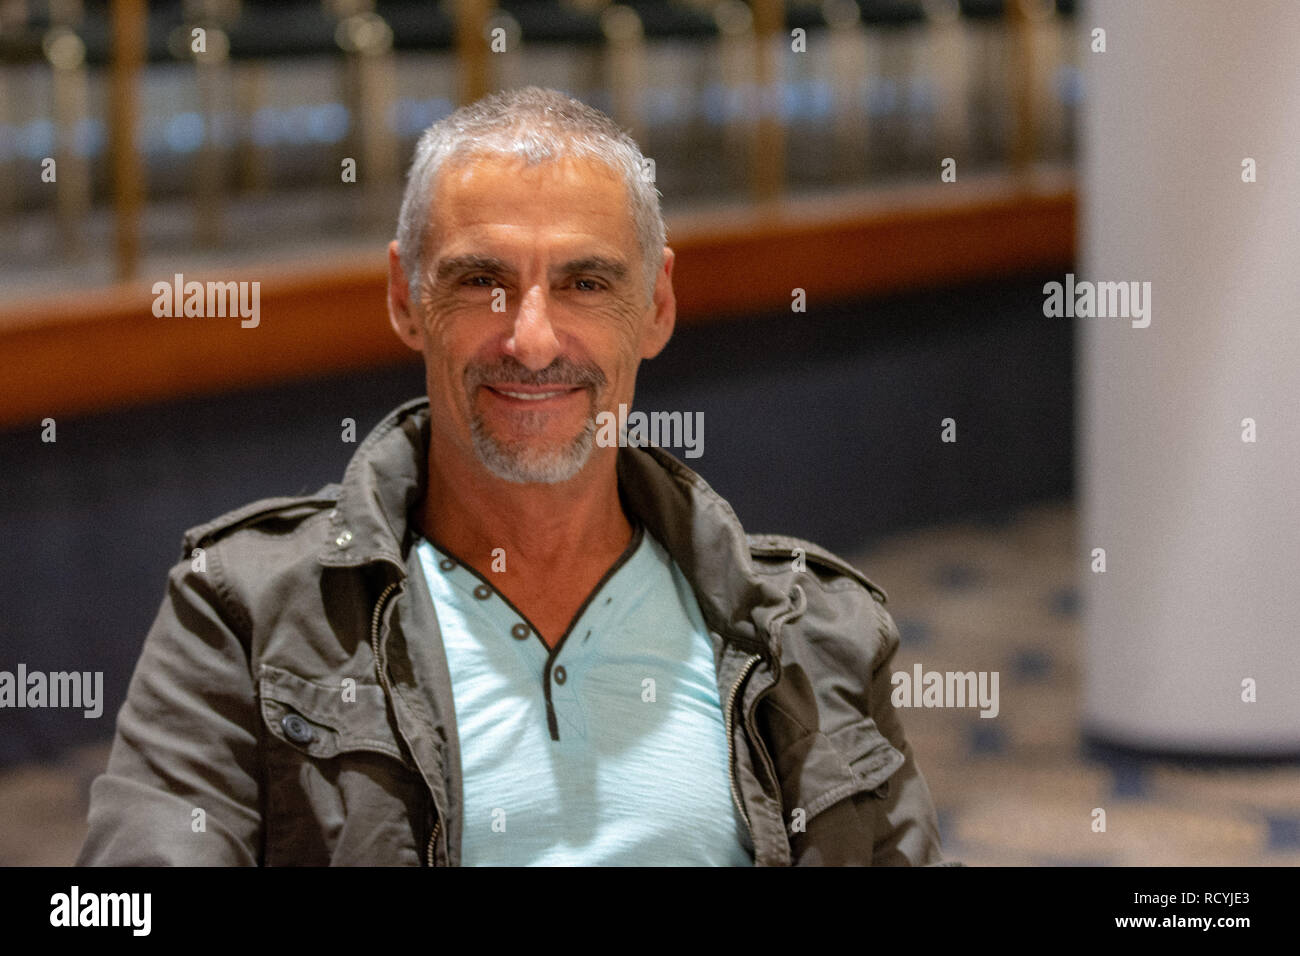 https www alamy com bonn germany may 19th 2018 cliff simon 1962 actor stargate sg 1 at fedcon 27 a four day sci fi fan convention image231717867 html